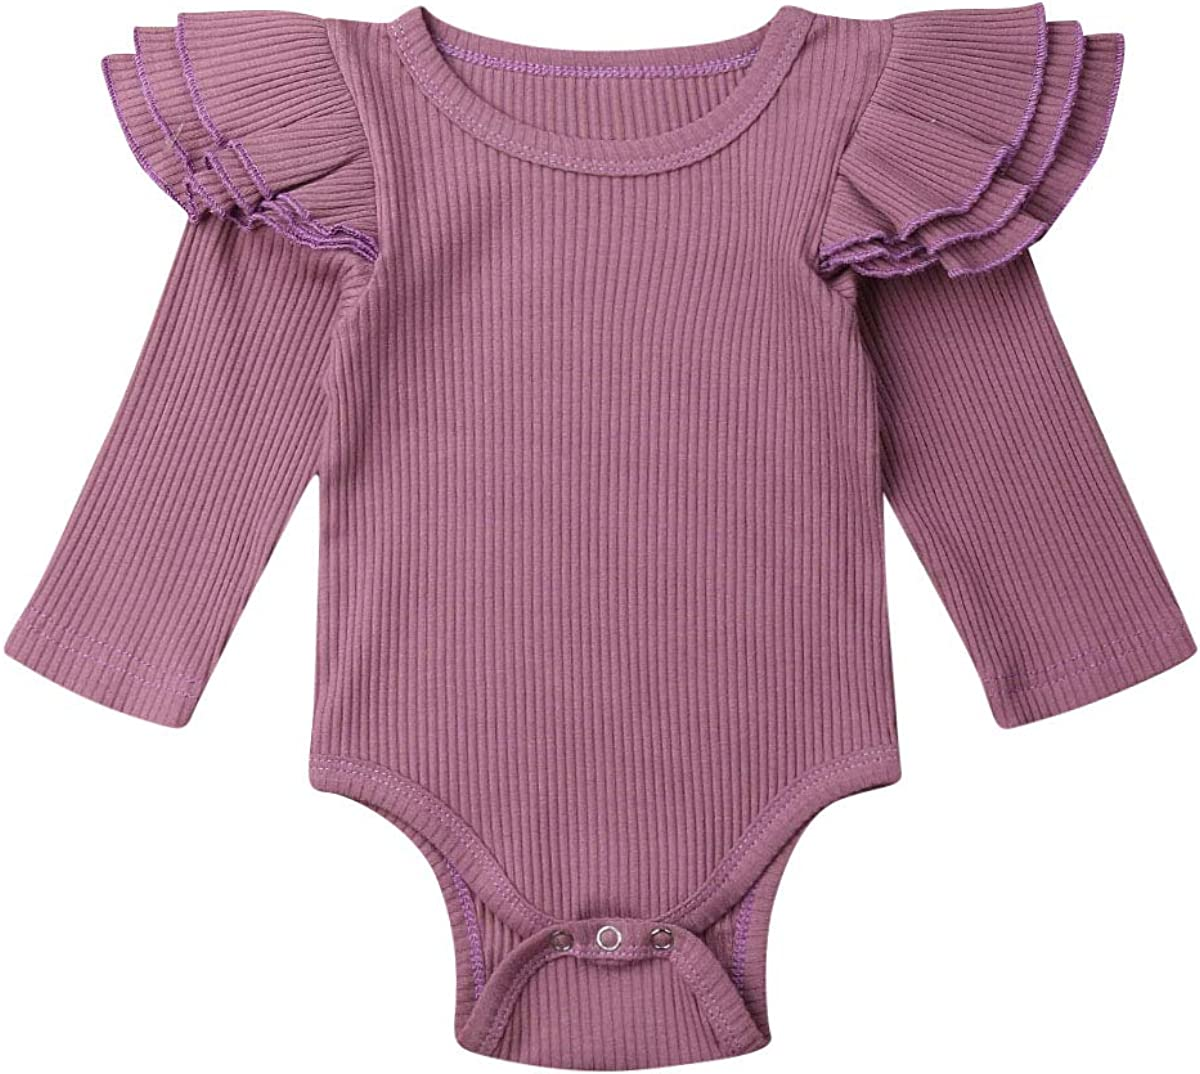 Opperiaya Baby Girl Boy Romper Bodysuit Solid Plain One Piece Jumpsuits Pajamas One Piece Clothes Outfits Summer Spring